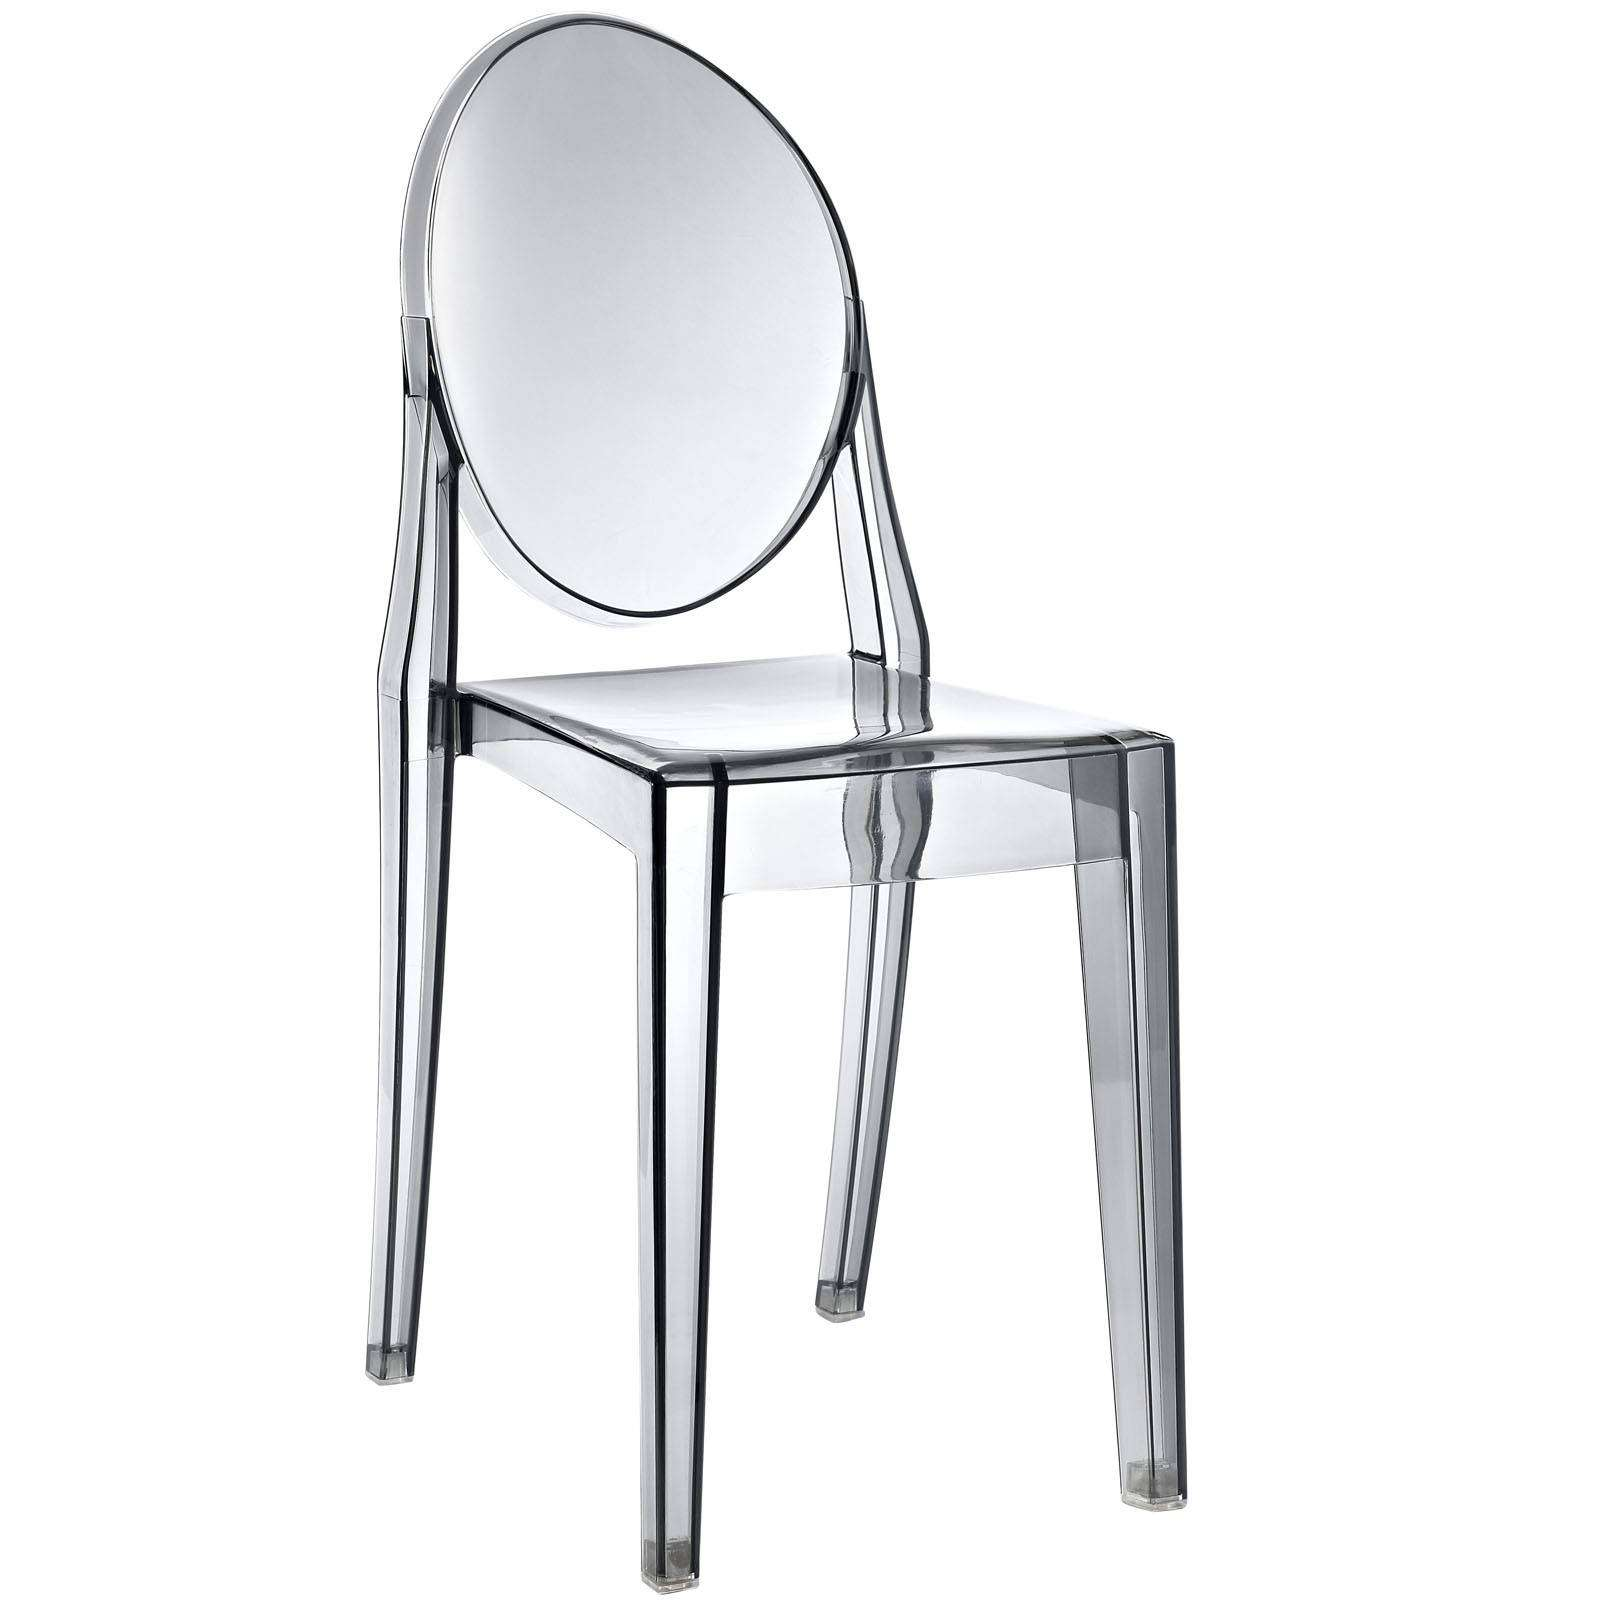 Bien-aimé Philippe Starck Style Victoria Ghost Side Chair EO96